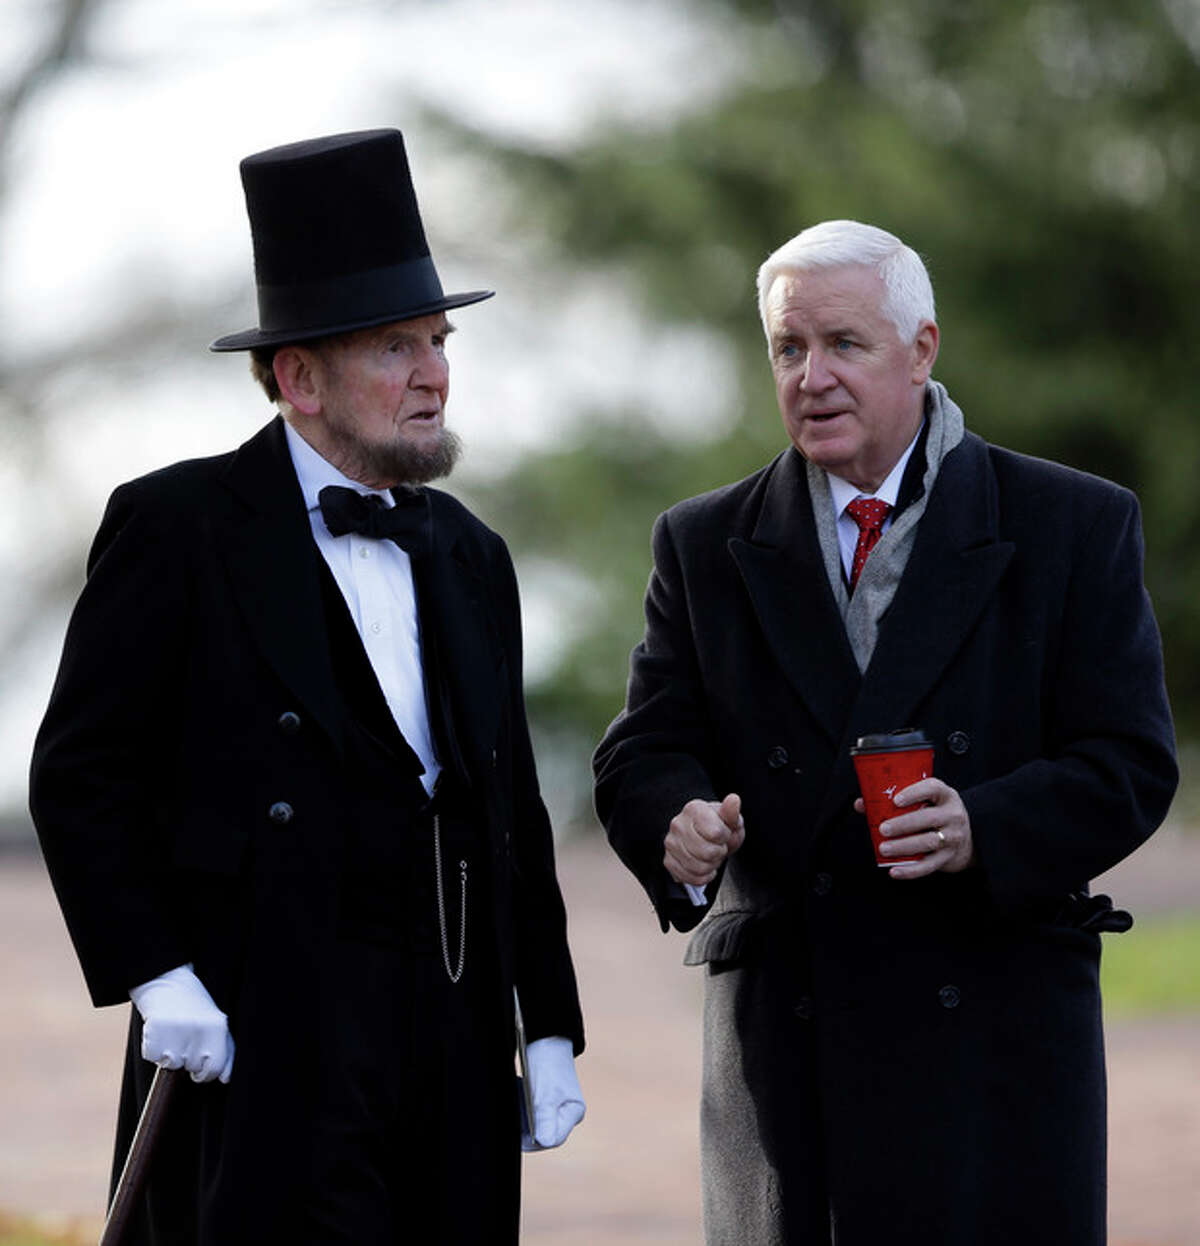 Pennsylvania Gov. Tom Corbett, right, speaks with James Getty, portraying President Abraham Lincoln, before a ceremony commemorating the 150th anniversary of the dedication of the Soldiers?' National Cemetery and President Abraham Lincoln's Gettysburg Address, Tuesday Nov. 19, 2013, in Gettysburg, Pa. Lincoln's speech was first delivered in Gettysburg nearly five months after the major battle that left tens of thousands of men wounded, dead or missing. Getty is scheduled to deliver the Gettysburg Address at Tuesday's ceremony. (AP Photo/Matt Rourke)